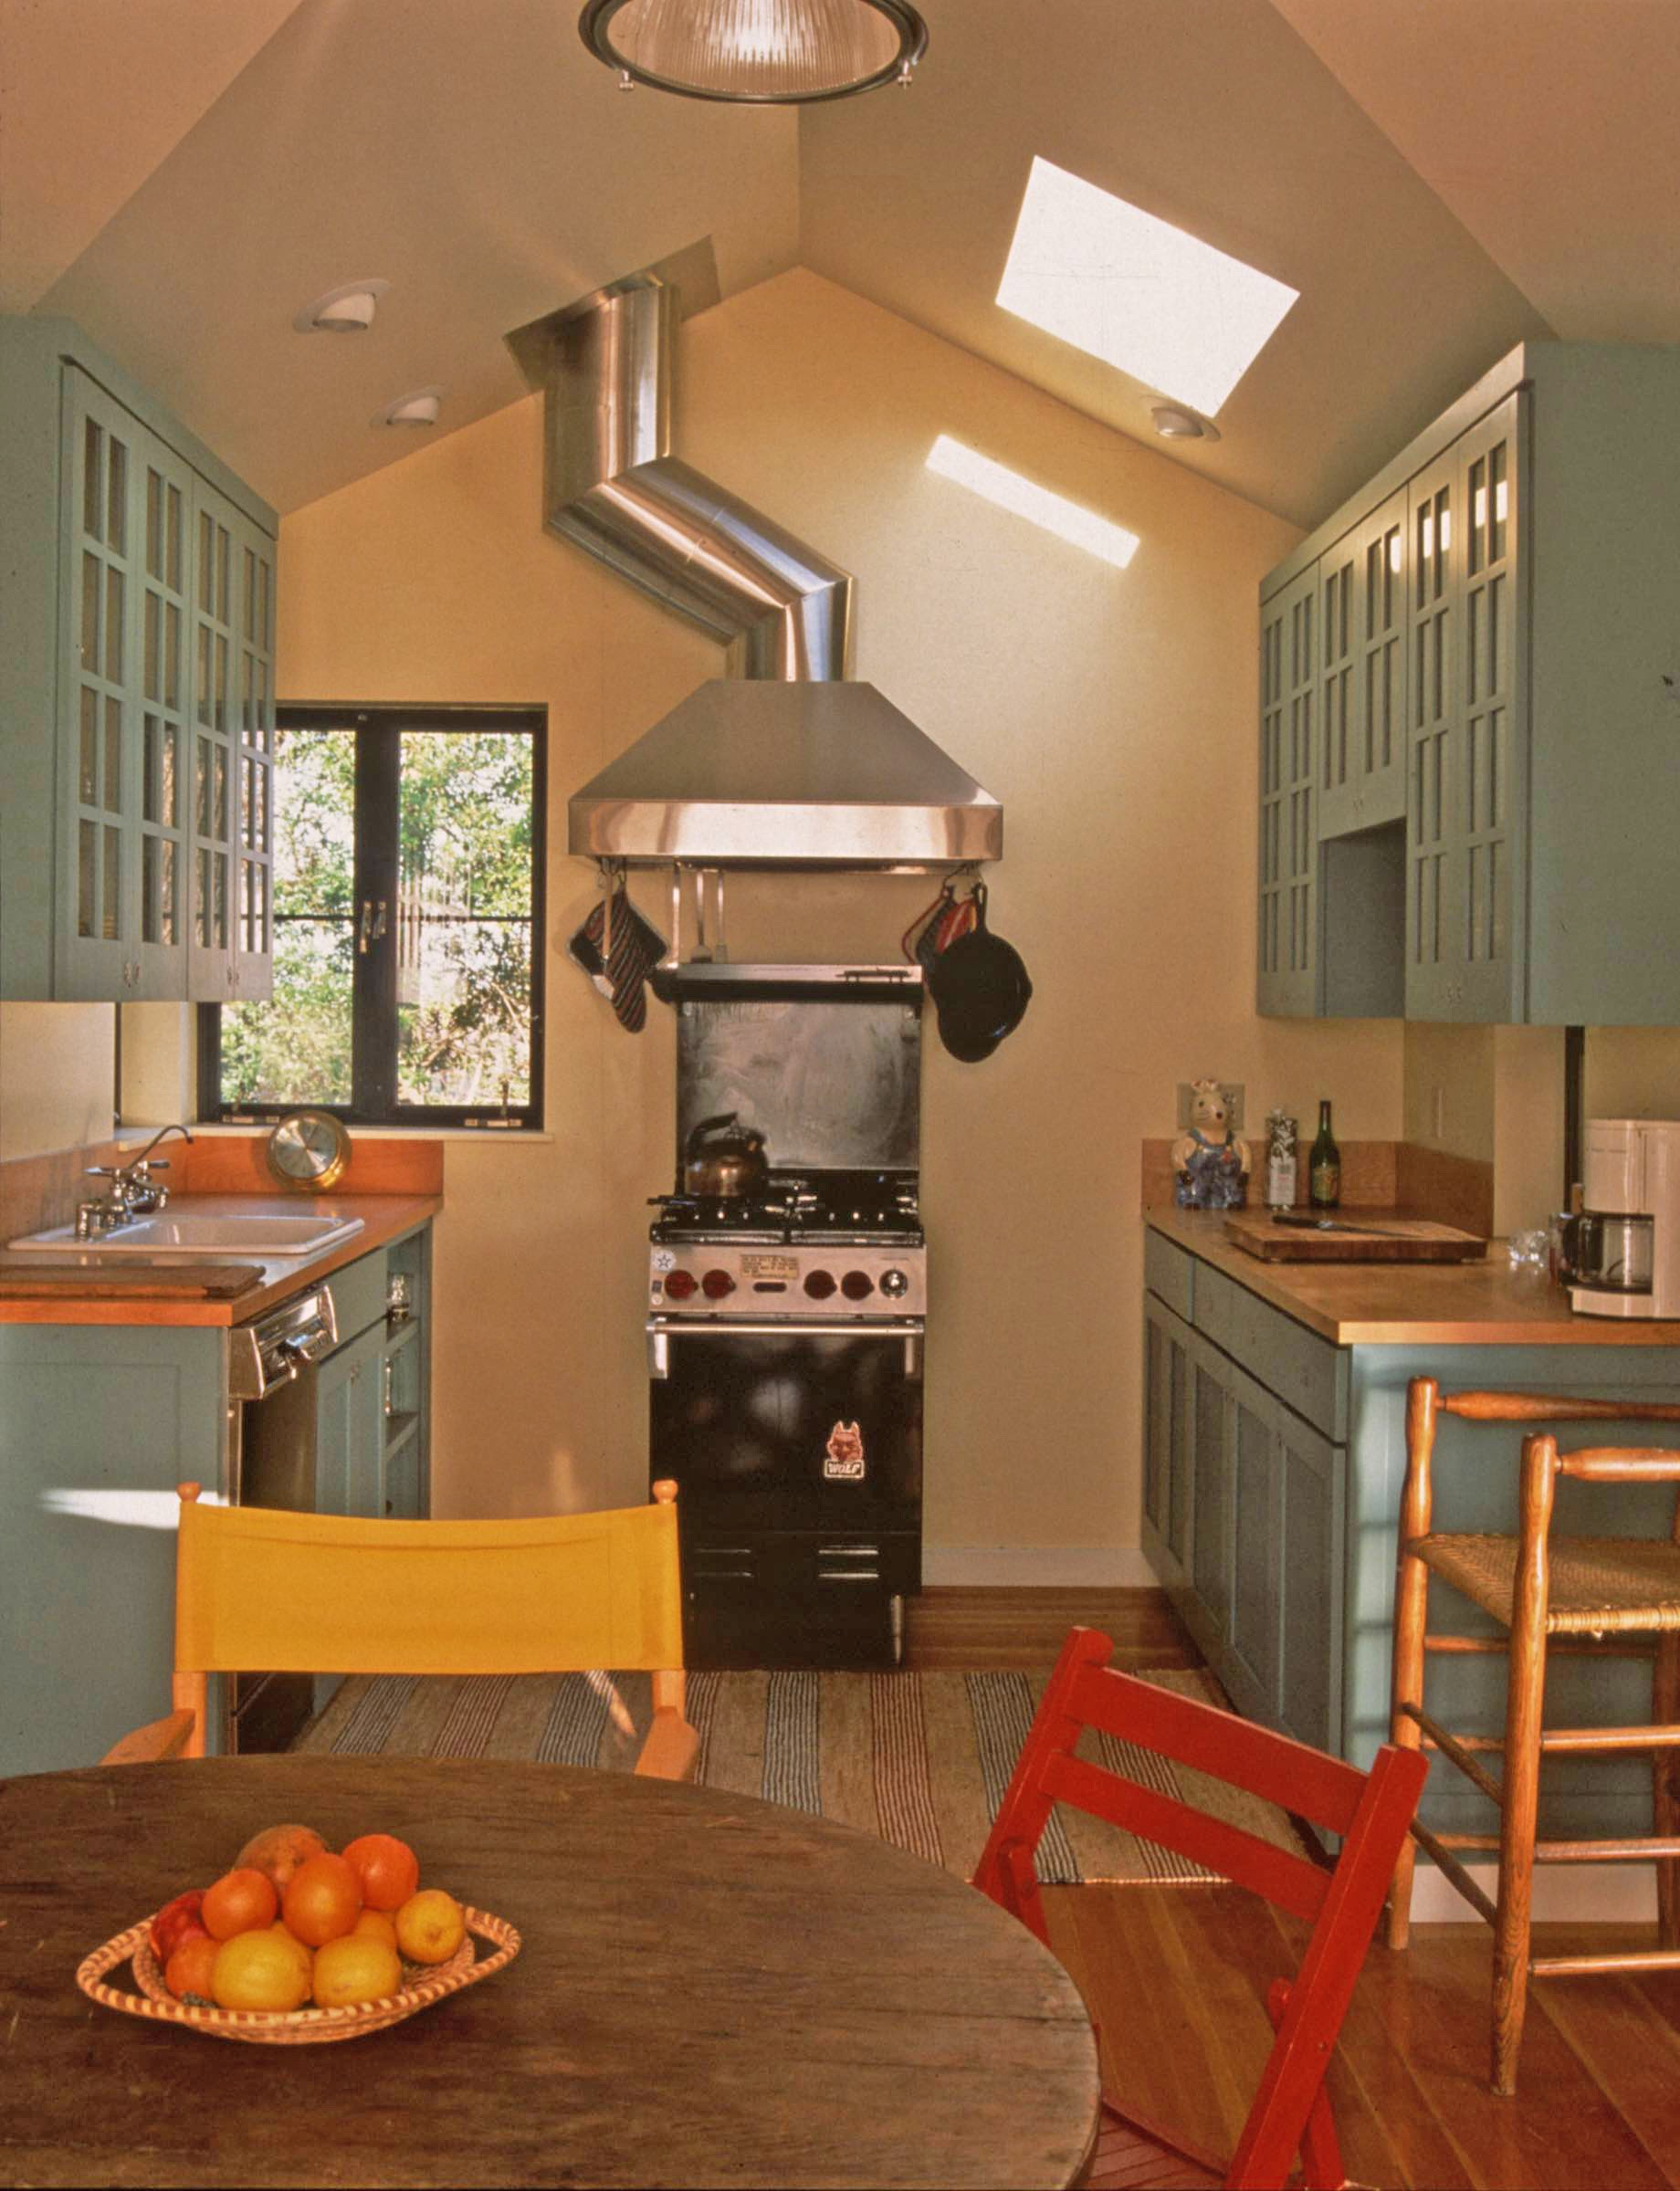 05.5 BERGGRUEN kitchen_lightened.jpg